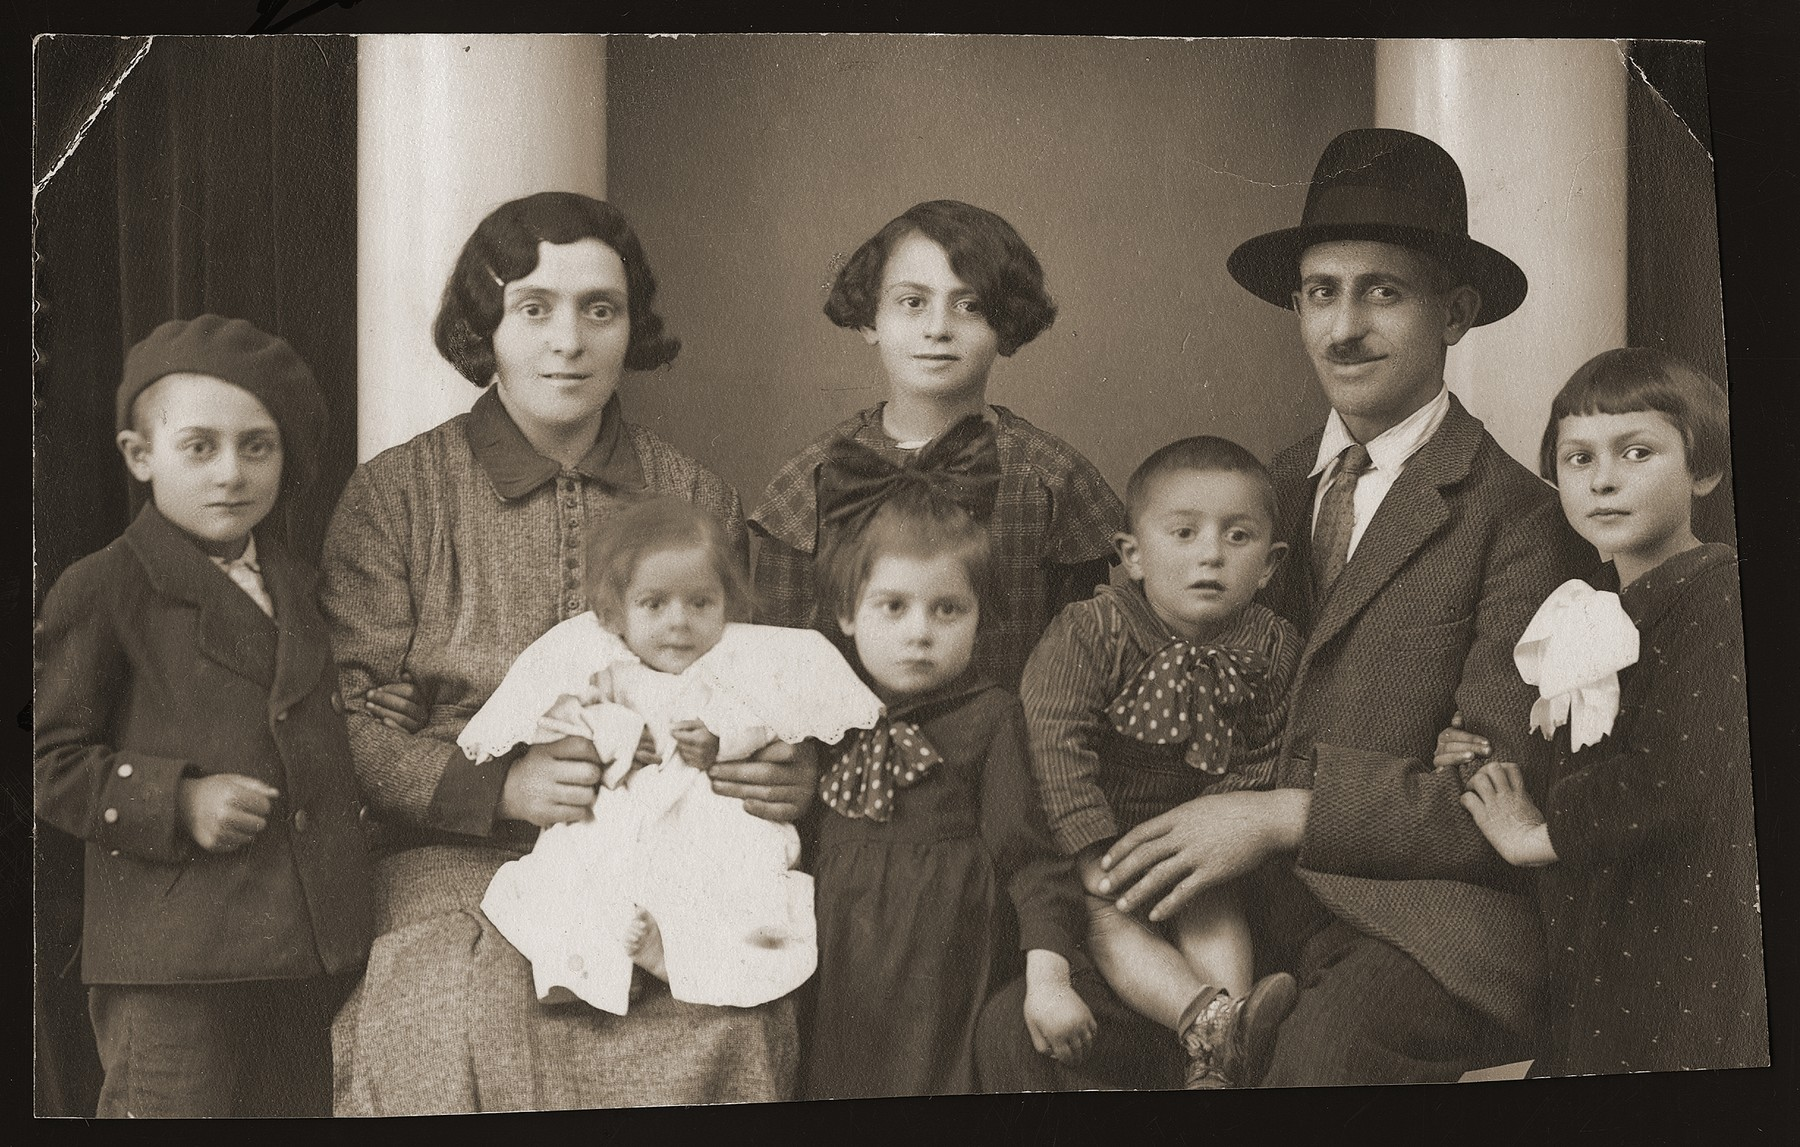 Portrait of the Guttman family soon after their move to Budapest.  Pictured are Sandor and Berta Guttman with their children Moncy, Emma, Ettel, Shimon, Miklos and Bela.